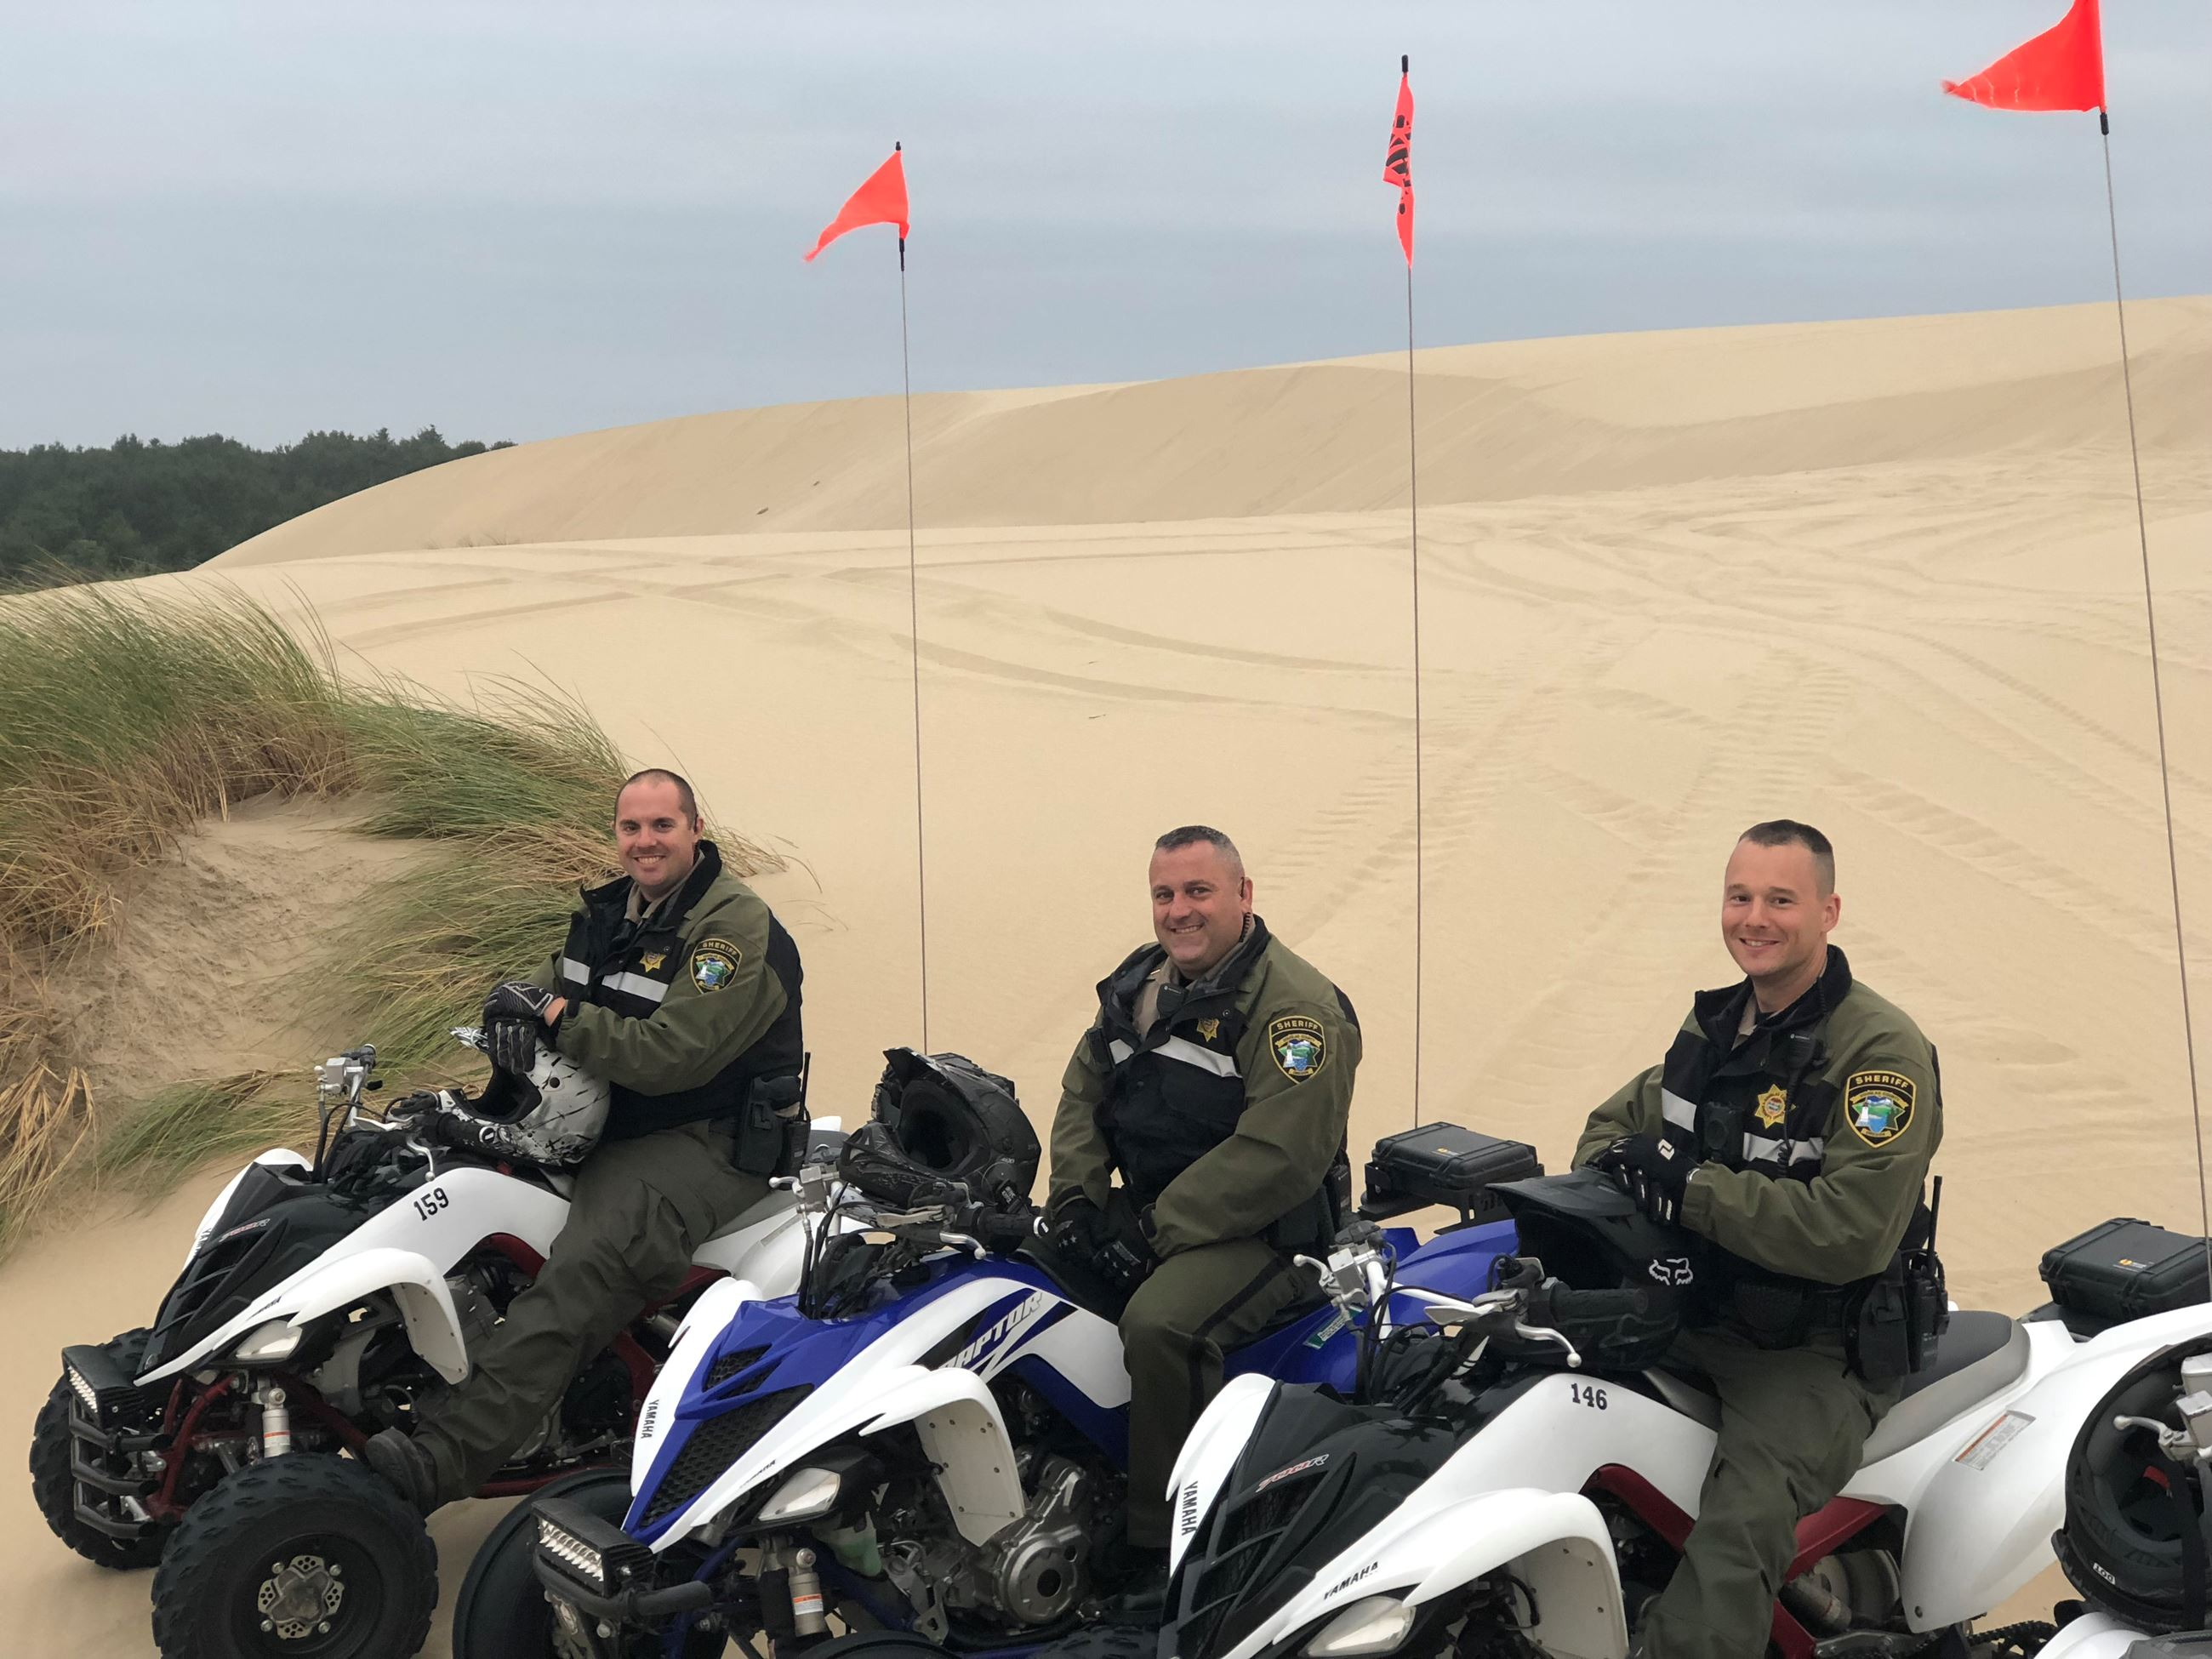 Three Police Officers on ATVs